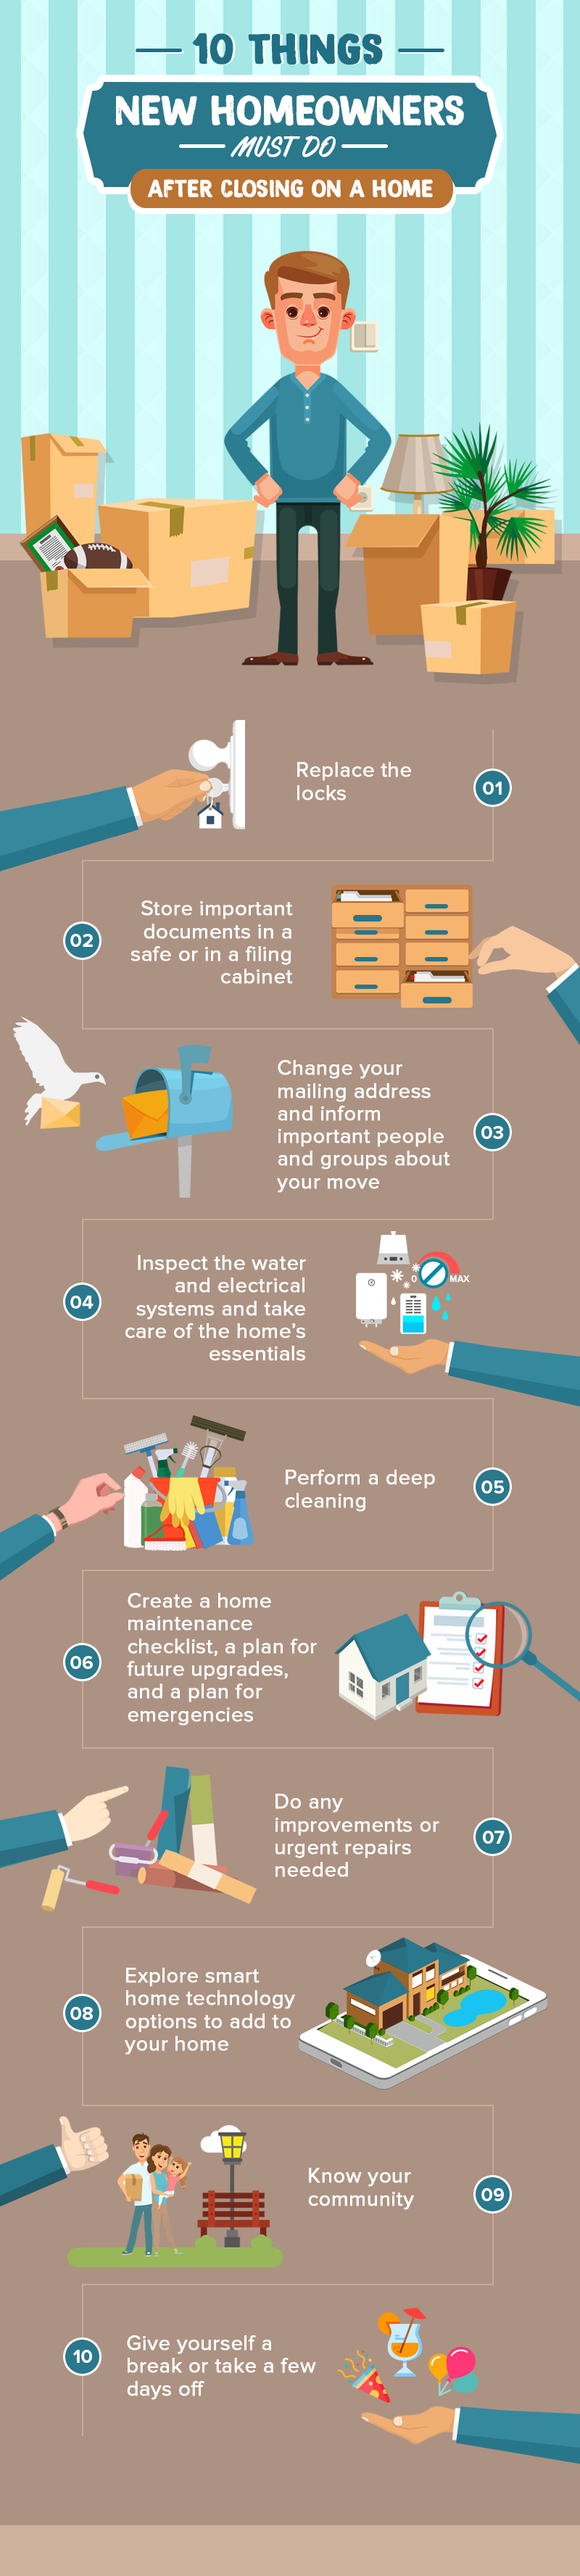 Things New Homeowners Must Do After Closing On A Home.jpg